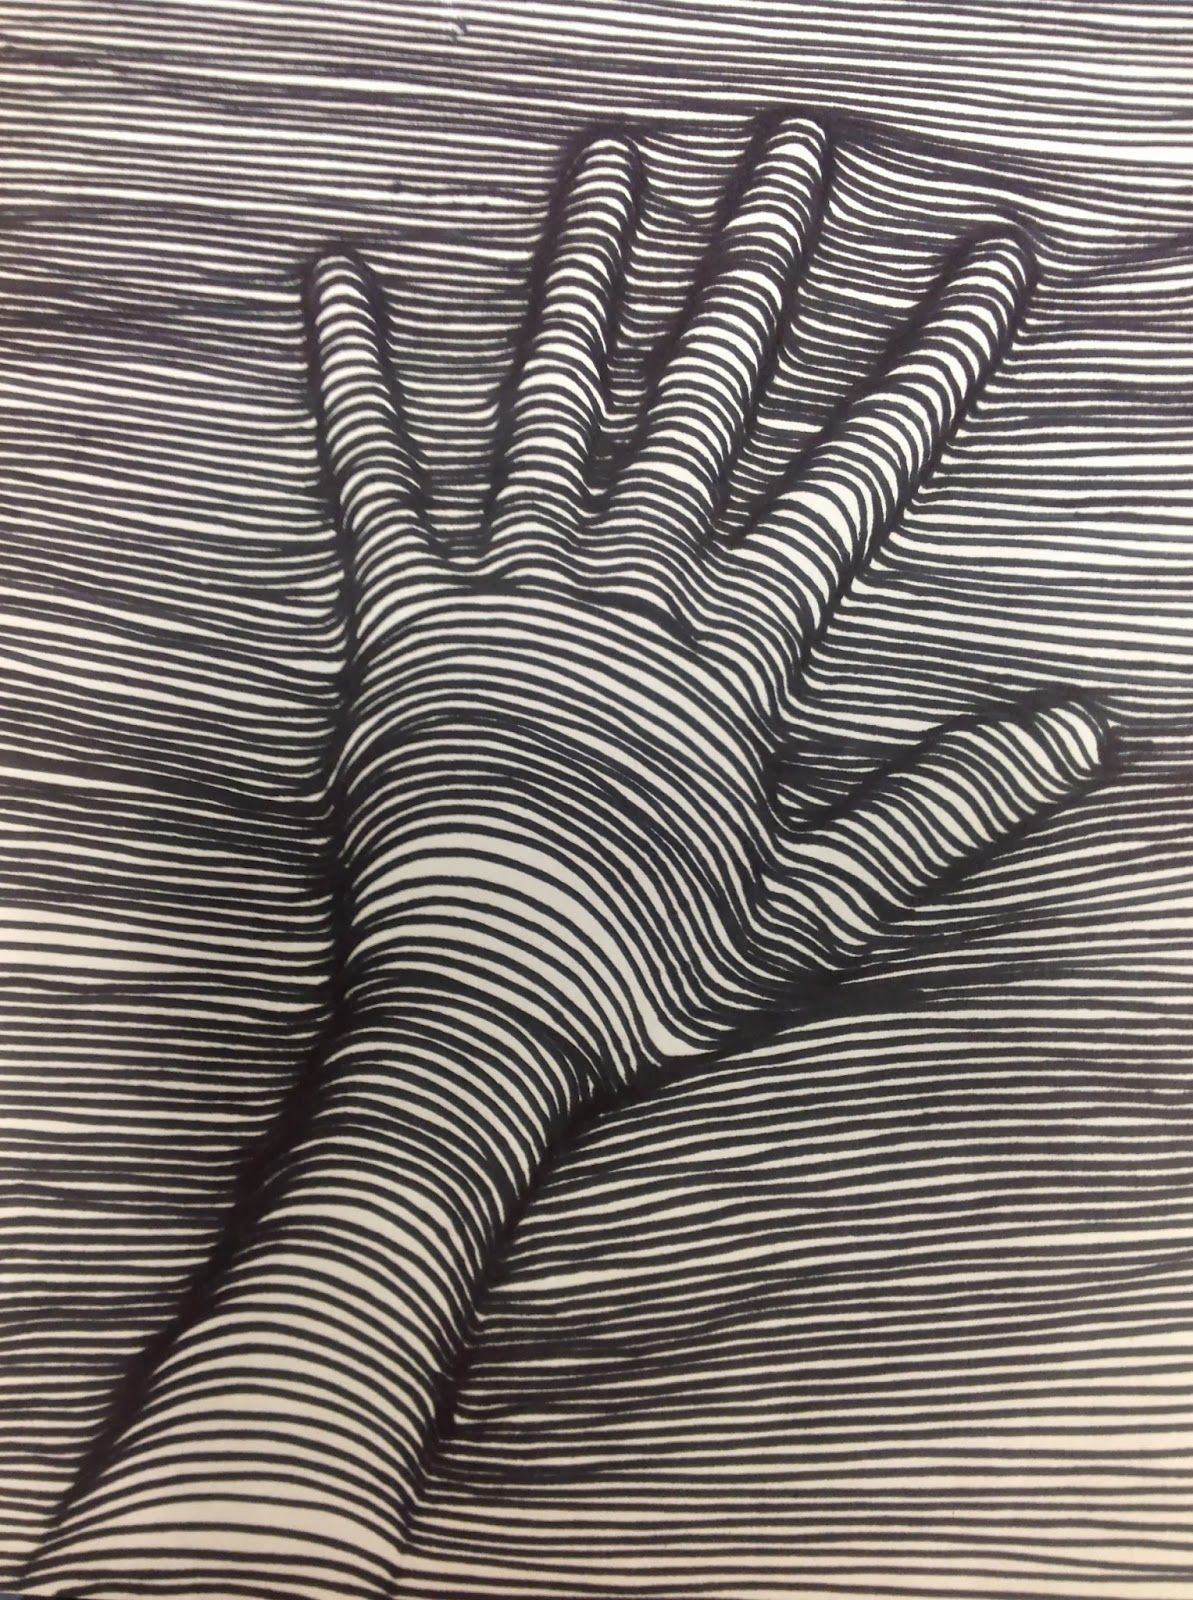 Cross Contour Line Drawing of a Hand   Education Art   Pinterest     Cross Contour Line Drawing of a Hand